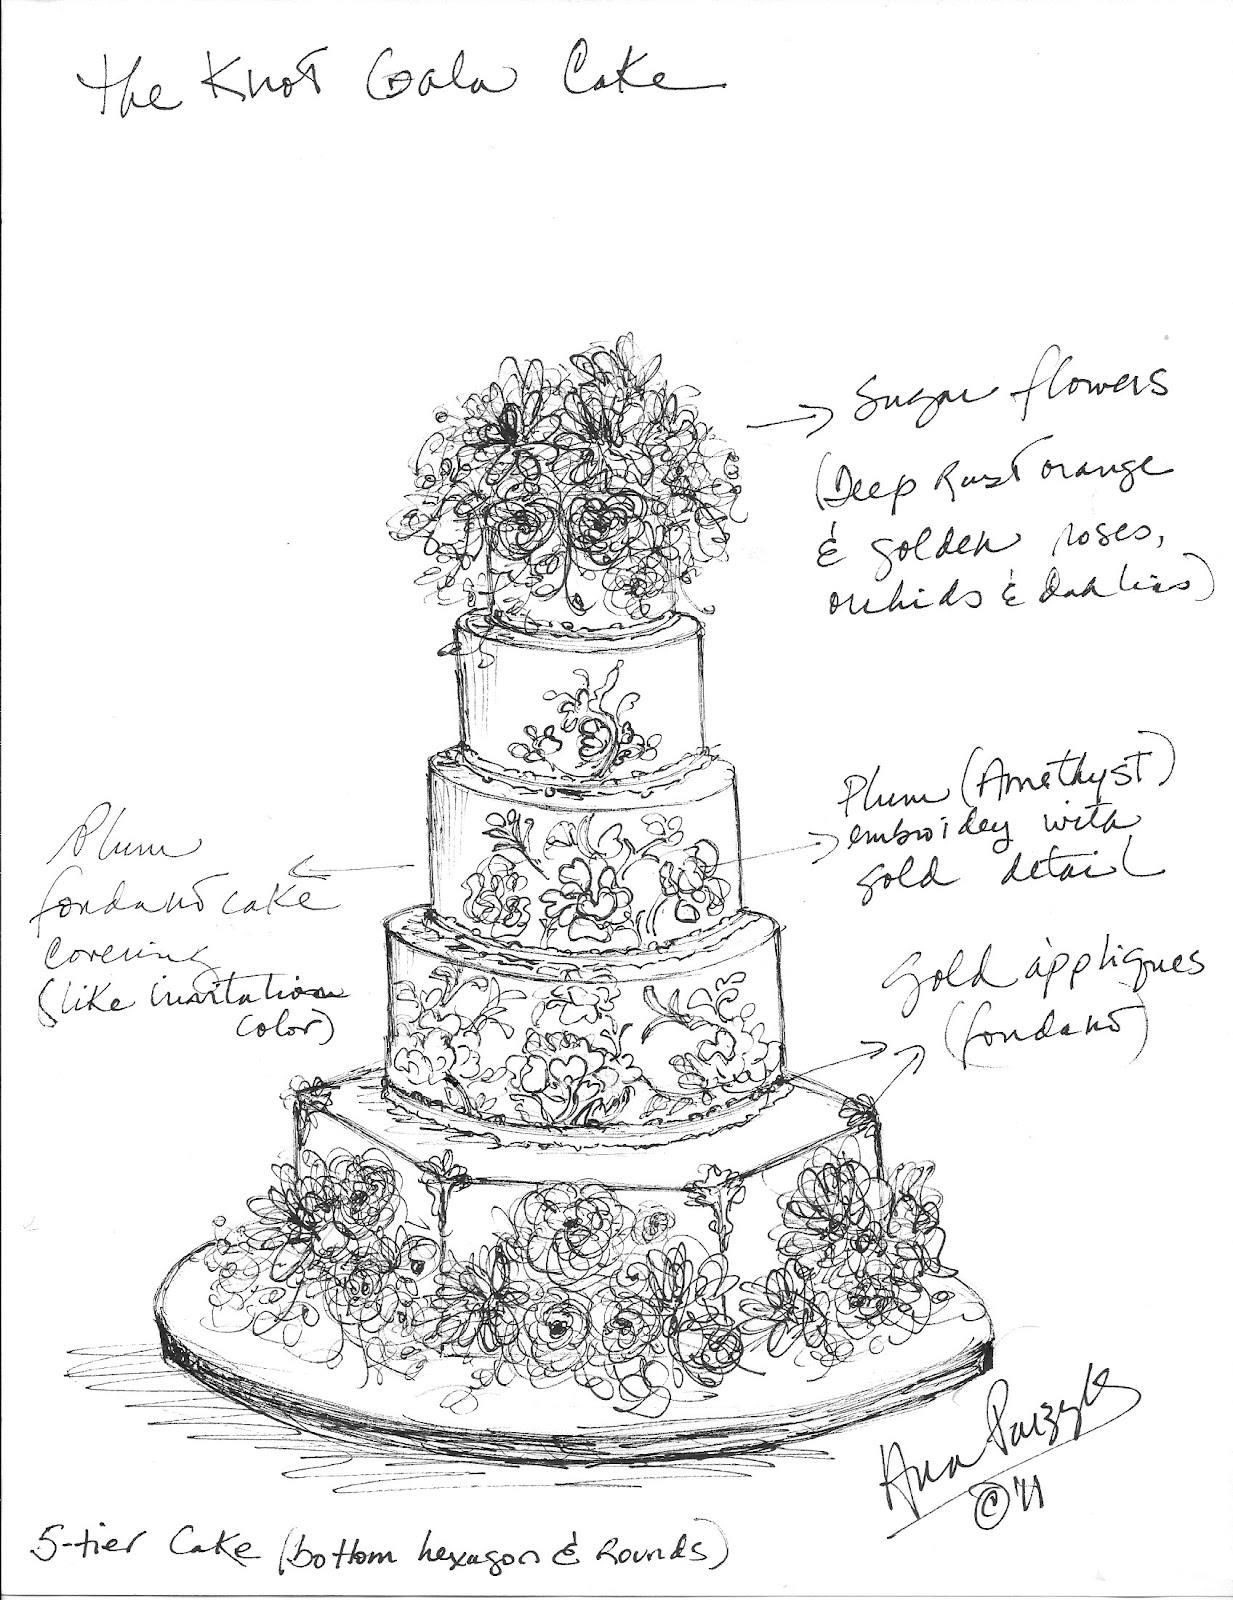 For the Love of Cake! by Garry & Ana Parzych: June 2012